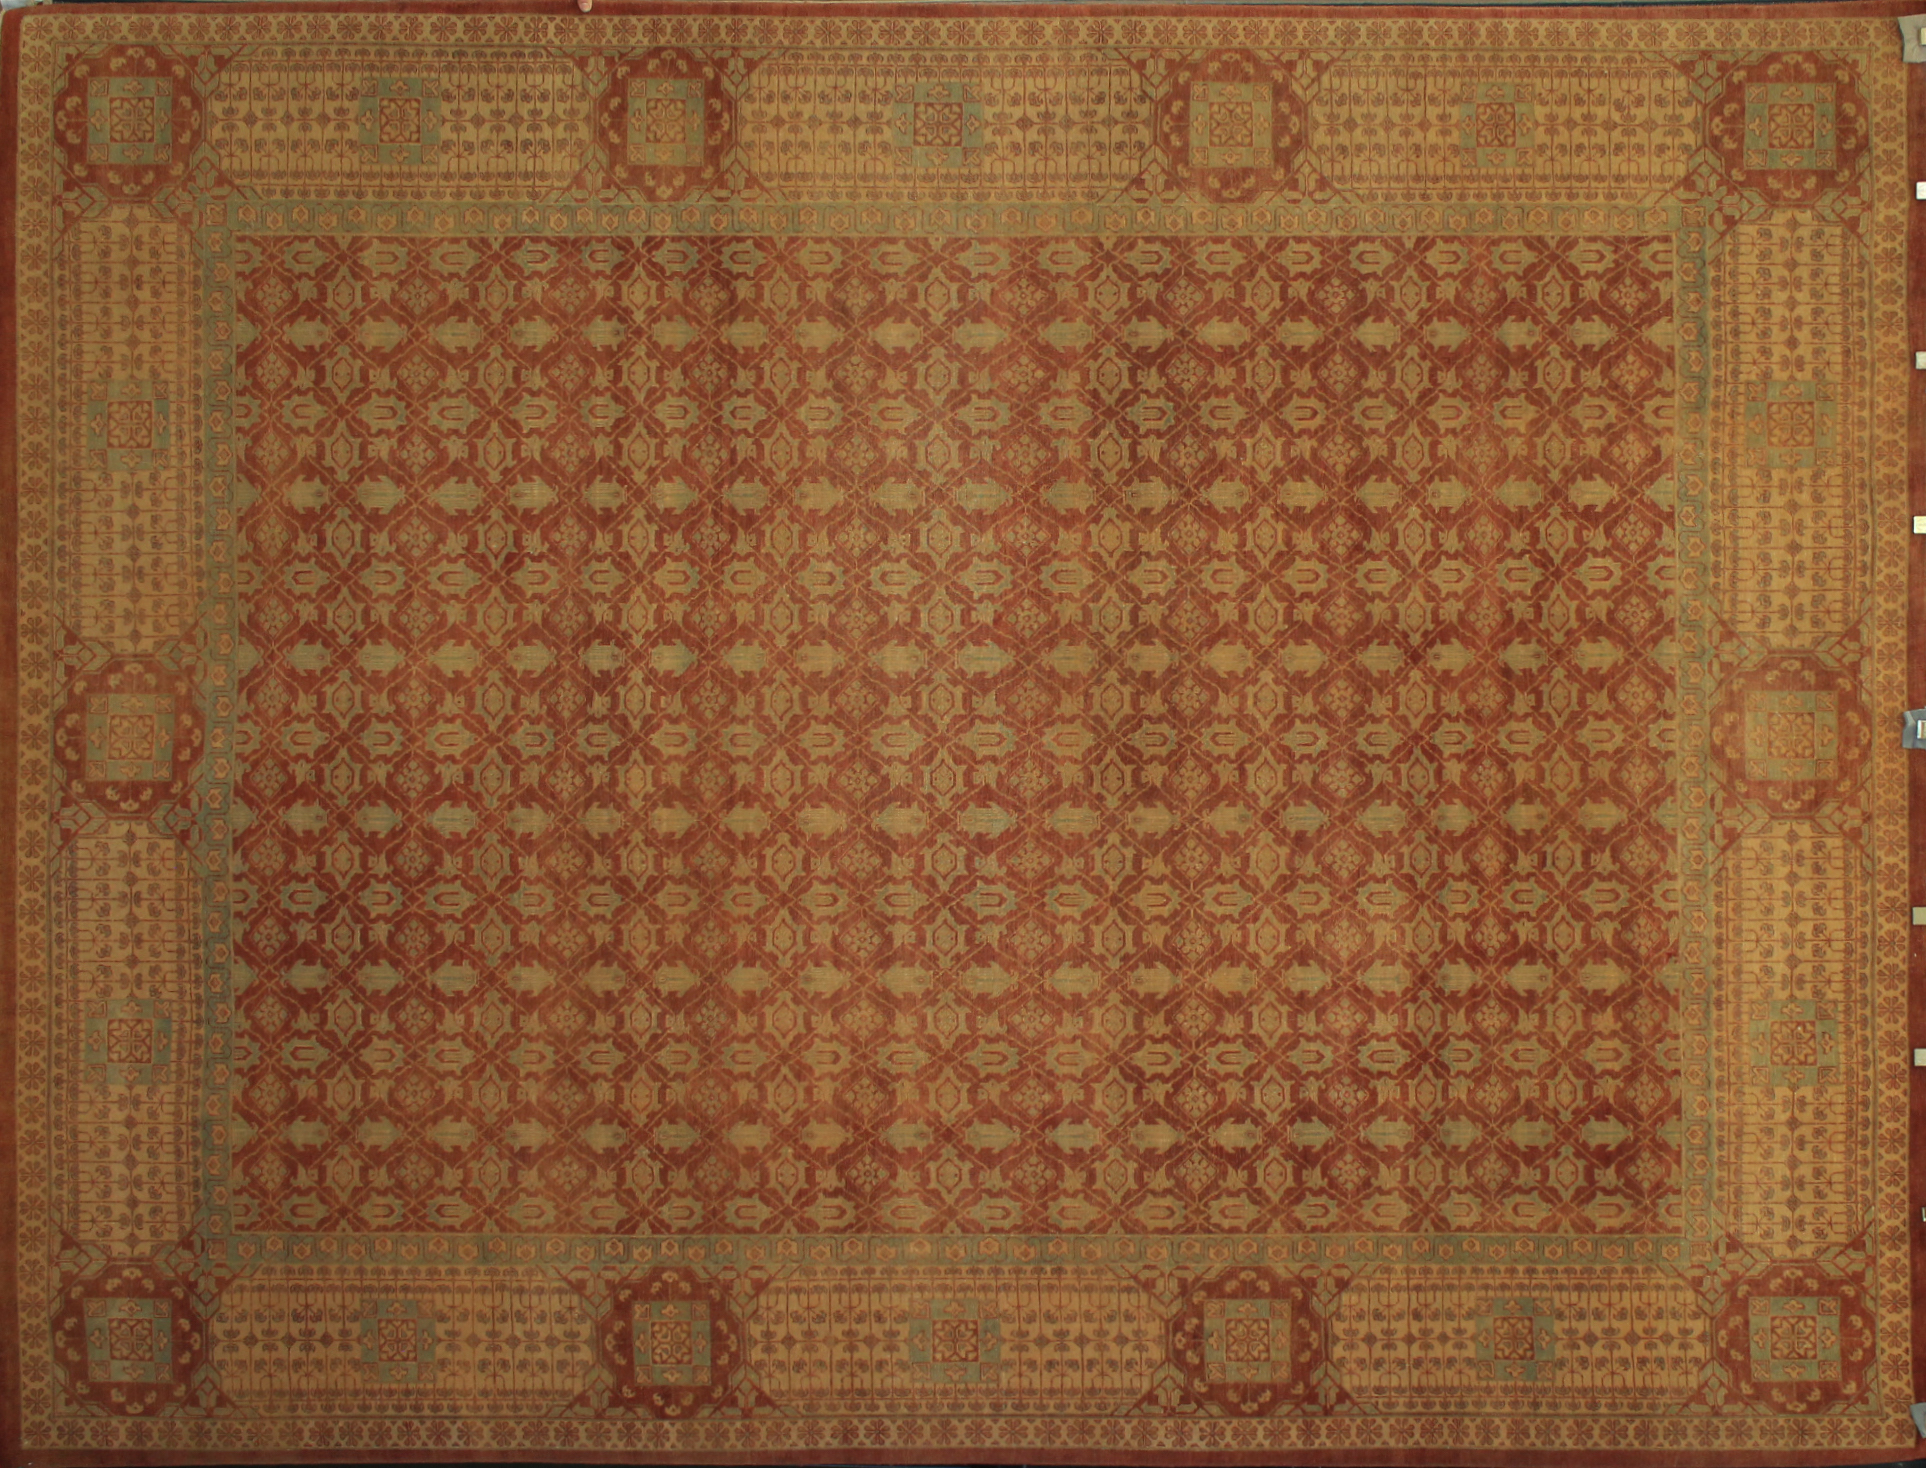 9x12 Antique Revival Hand Knotted Wool Area Rug - MR13126